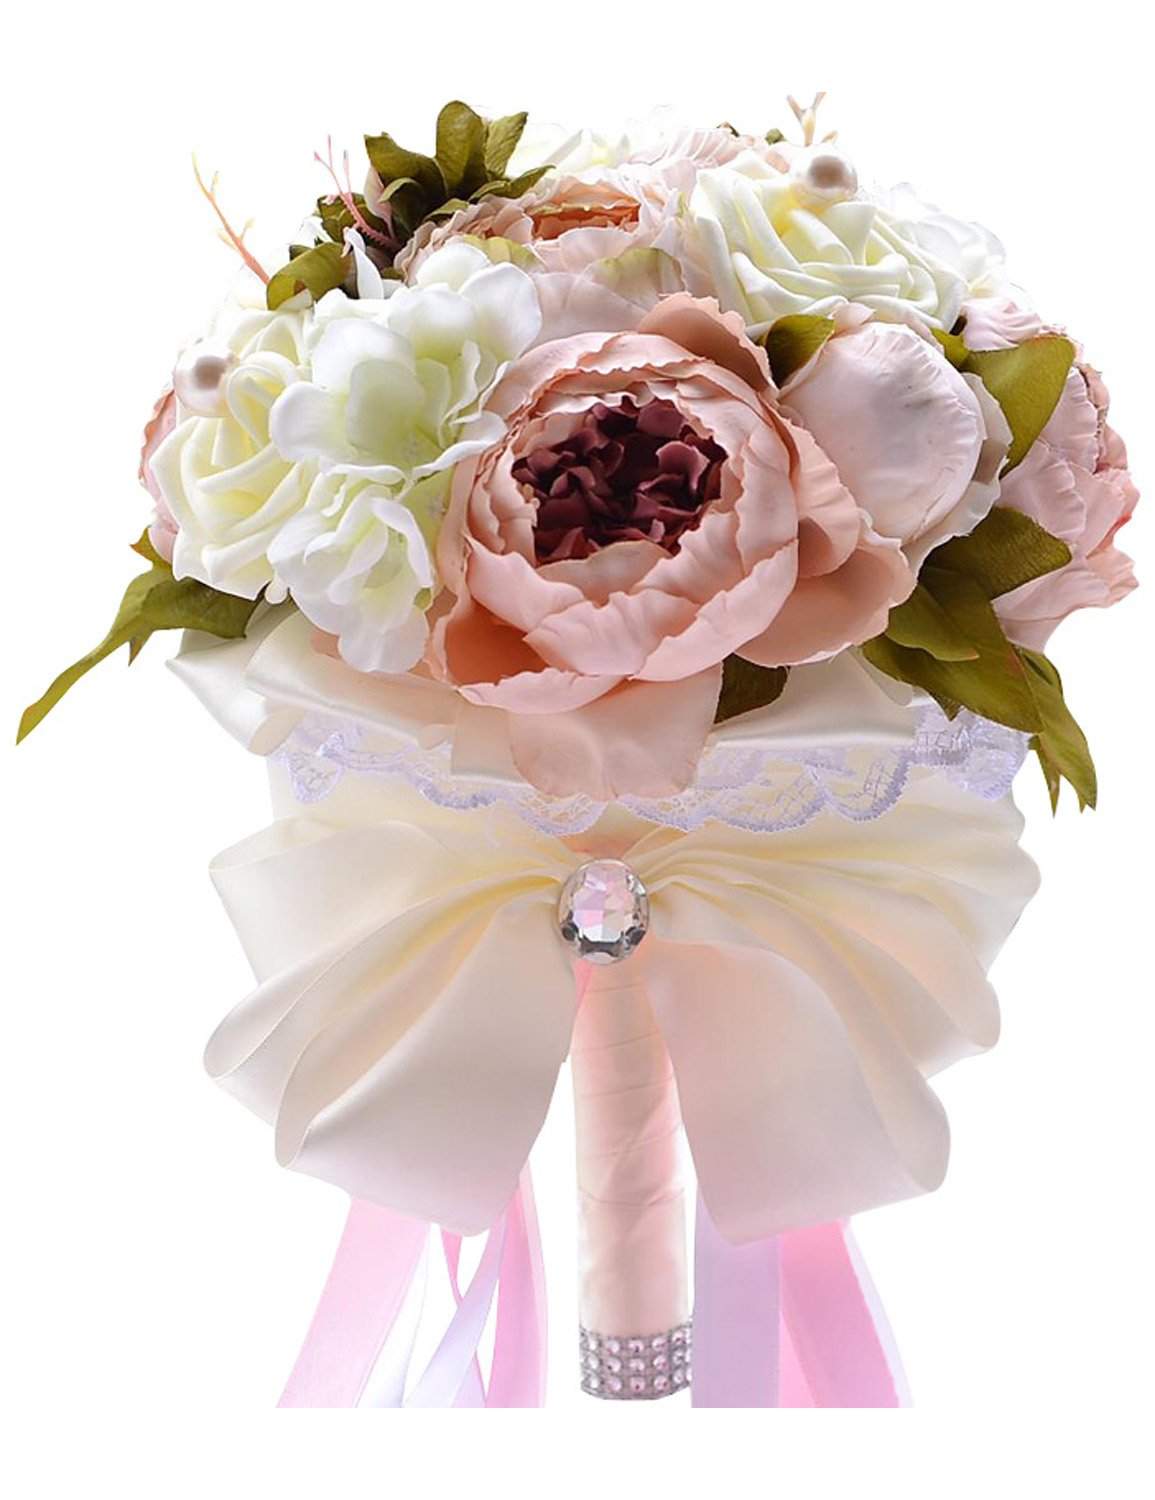 Clearbridal Silk Rose Bridal Wedding Bouquets Handmade Romantic Artificial Holding Flowers with Diamond Pearl WF034 Brown